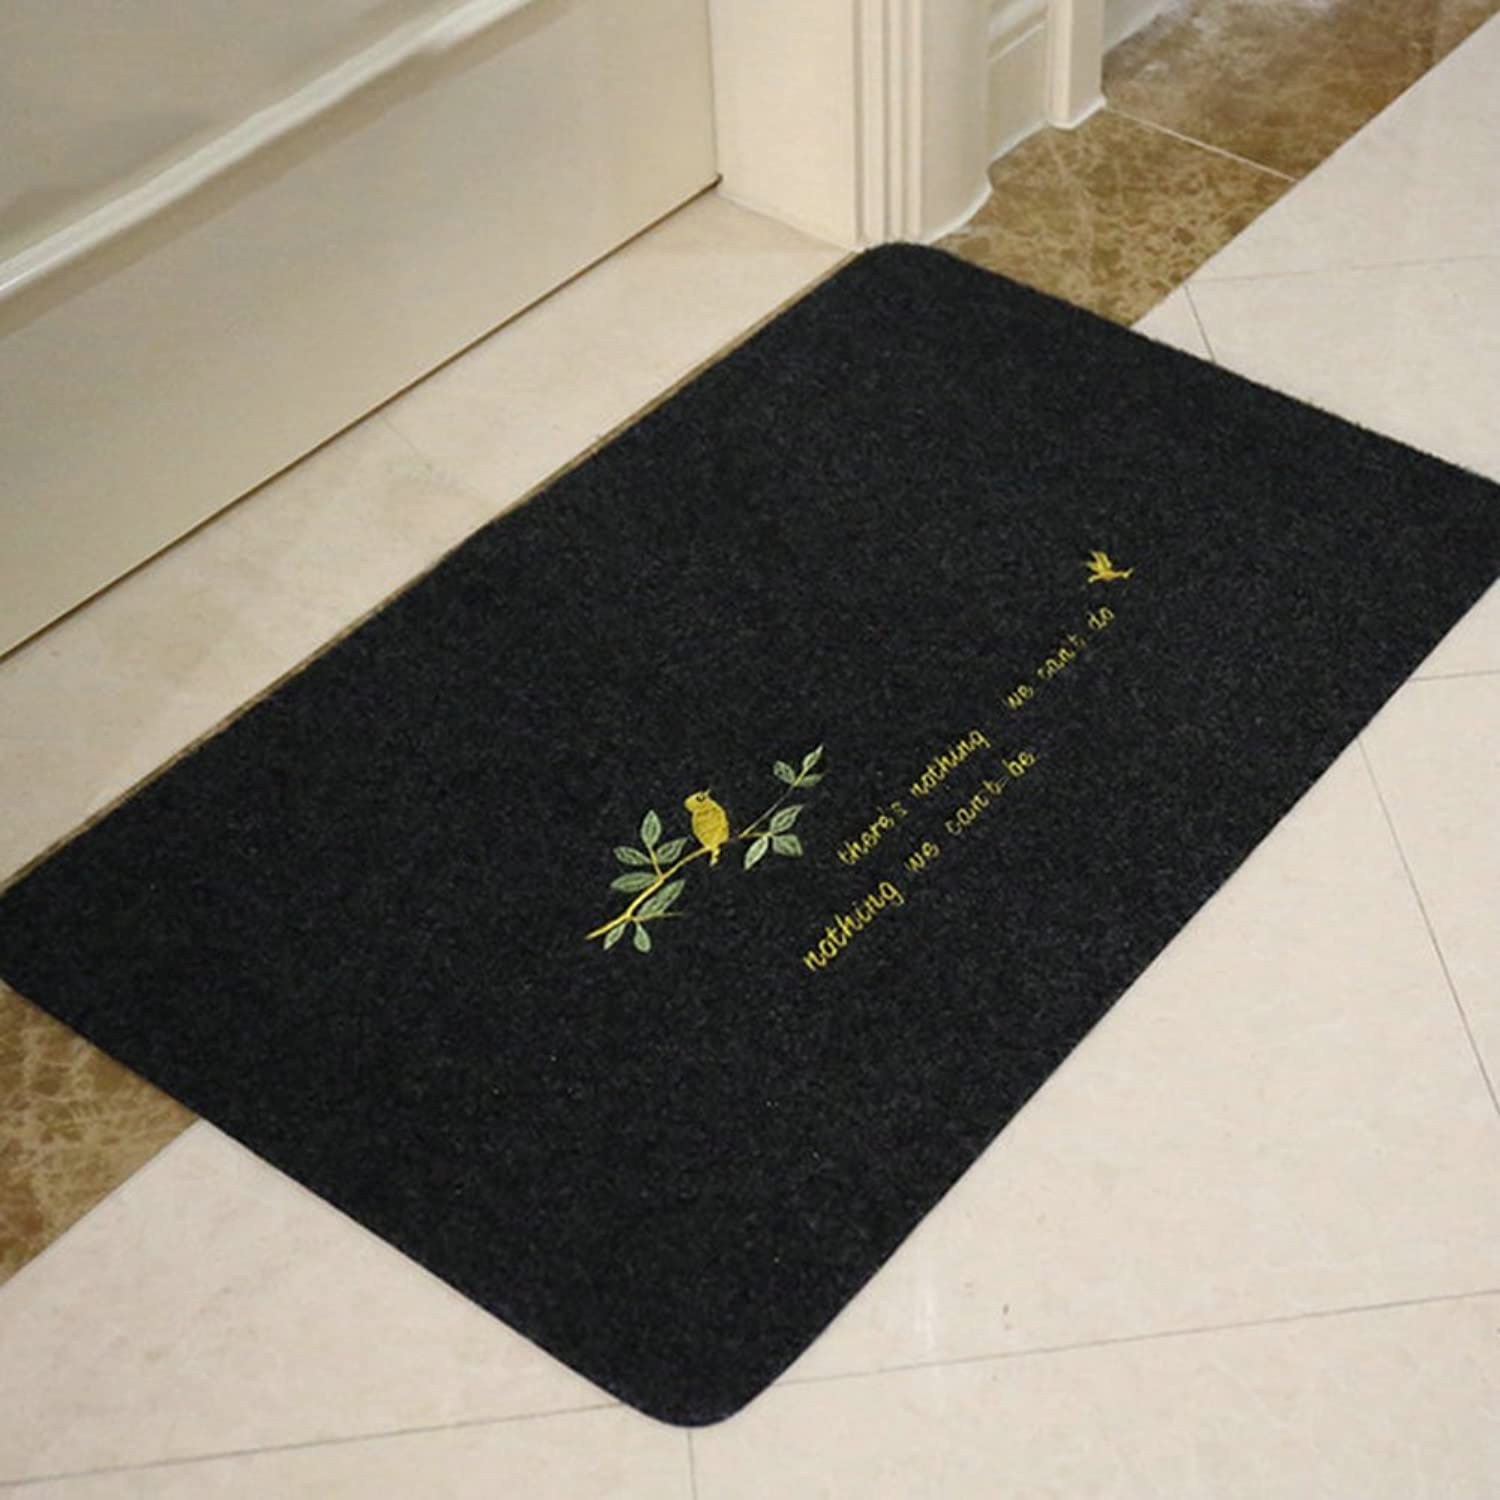 Embroidered,Rub Mud,Non-slip Mats Bathroom Mats Entrance,Doormats Doormat Mats In The Hall-C 80x120cm(31x47inch)